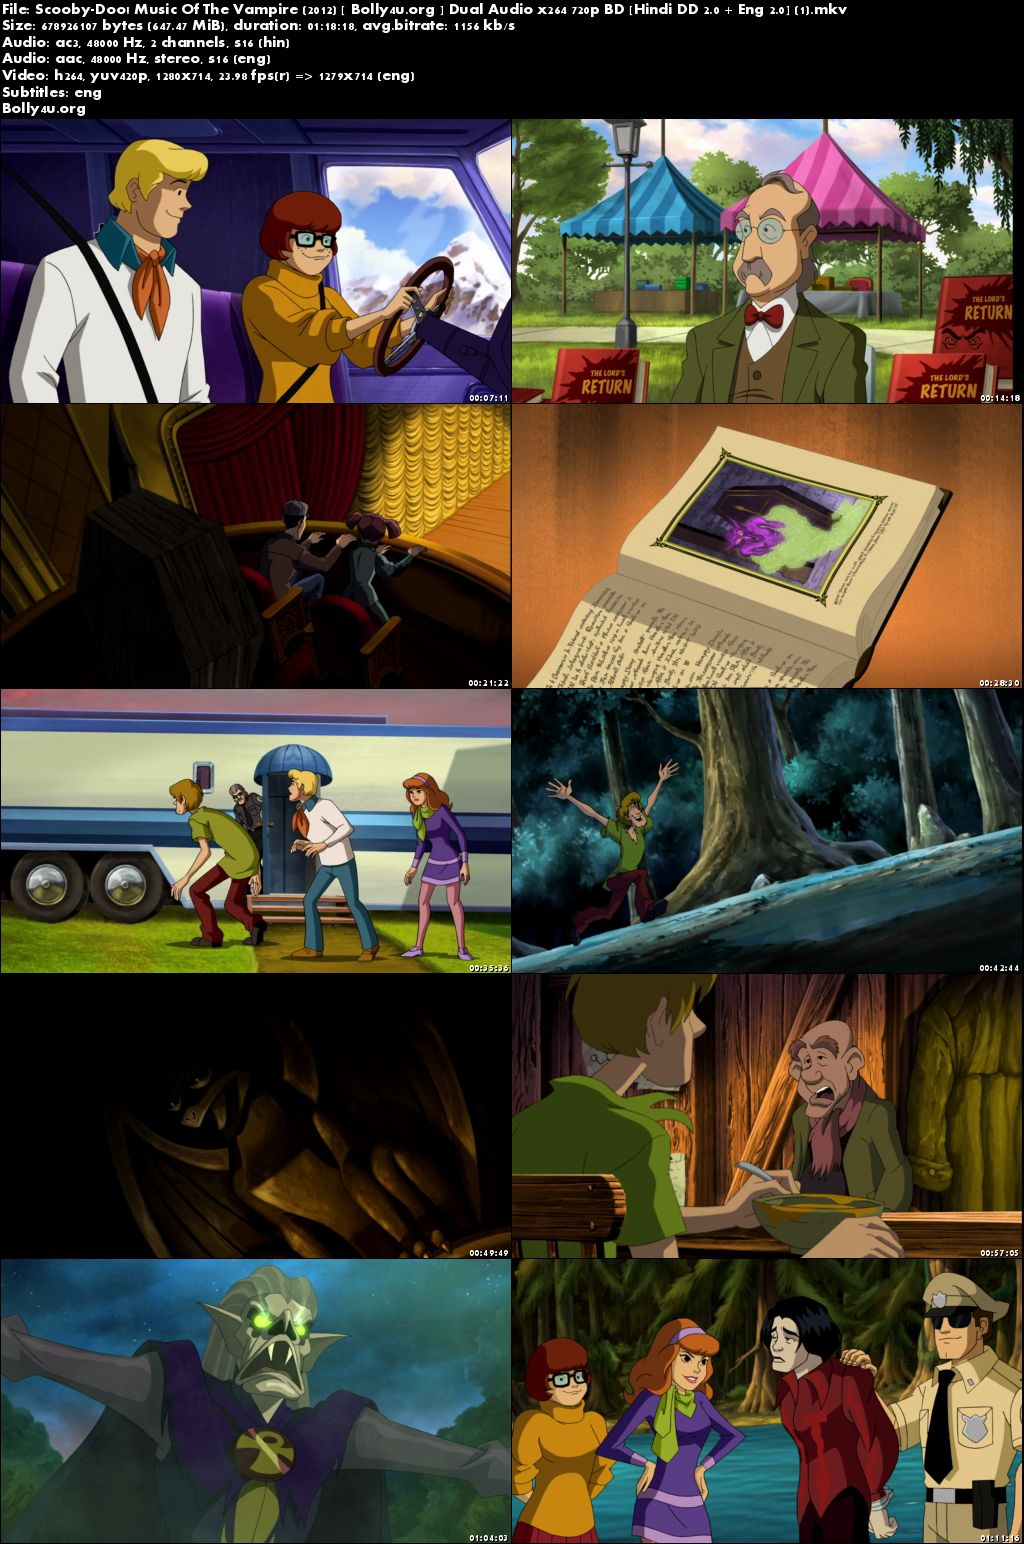 Scooby-Doo Music Of The Vampire 2012 BDRip 650MB Hindi Dual Audio 720p Download